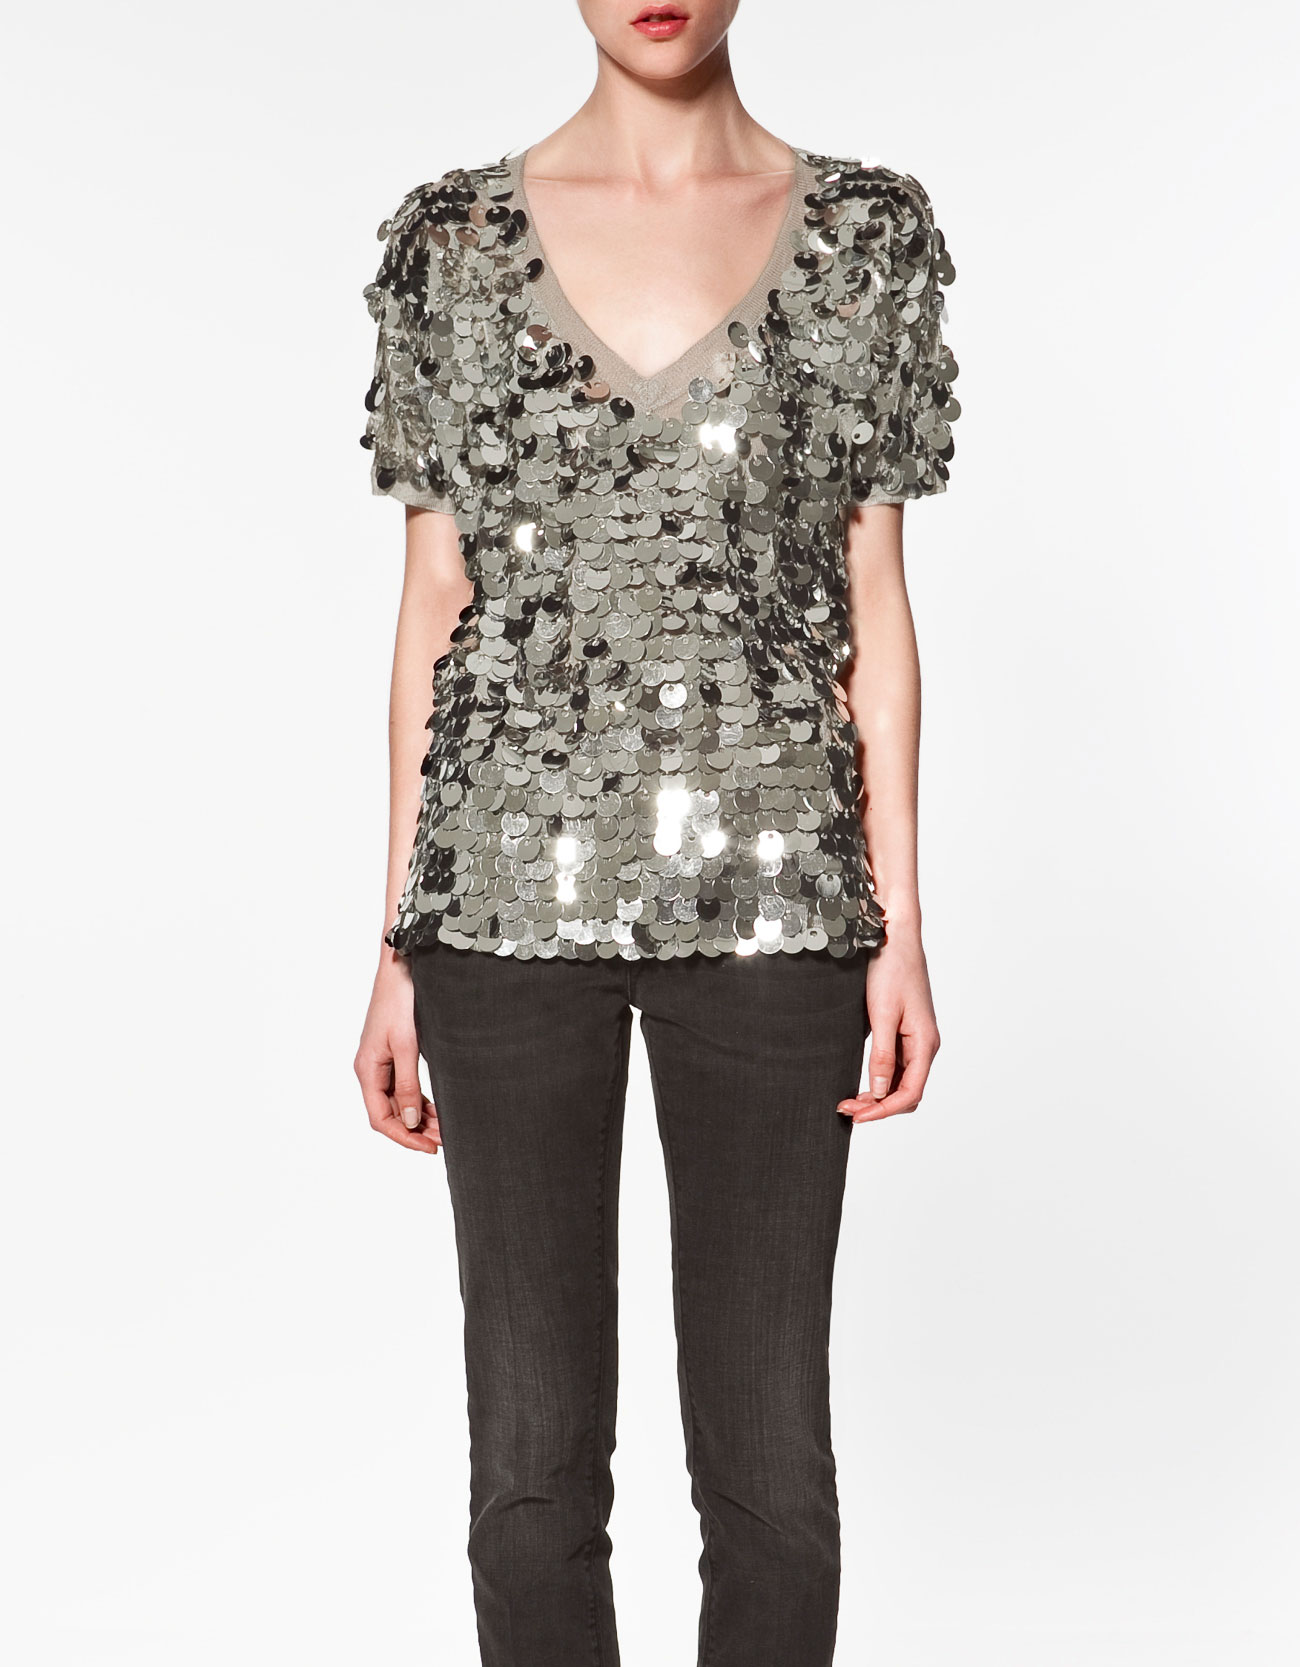 Zara Top with Sequins in Silver | Lyst